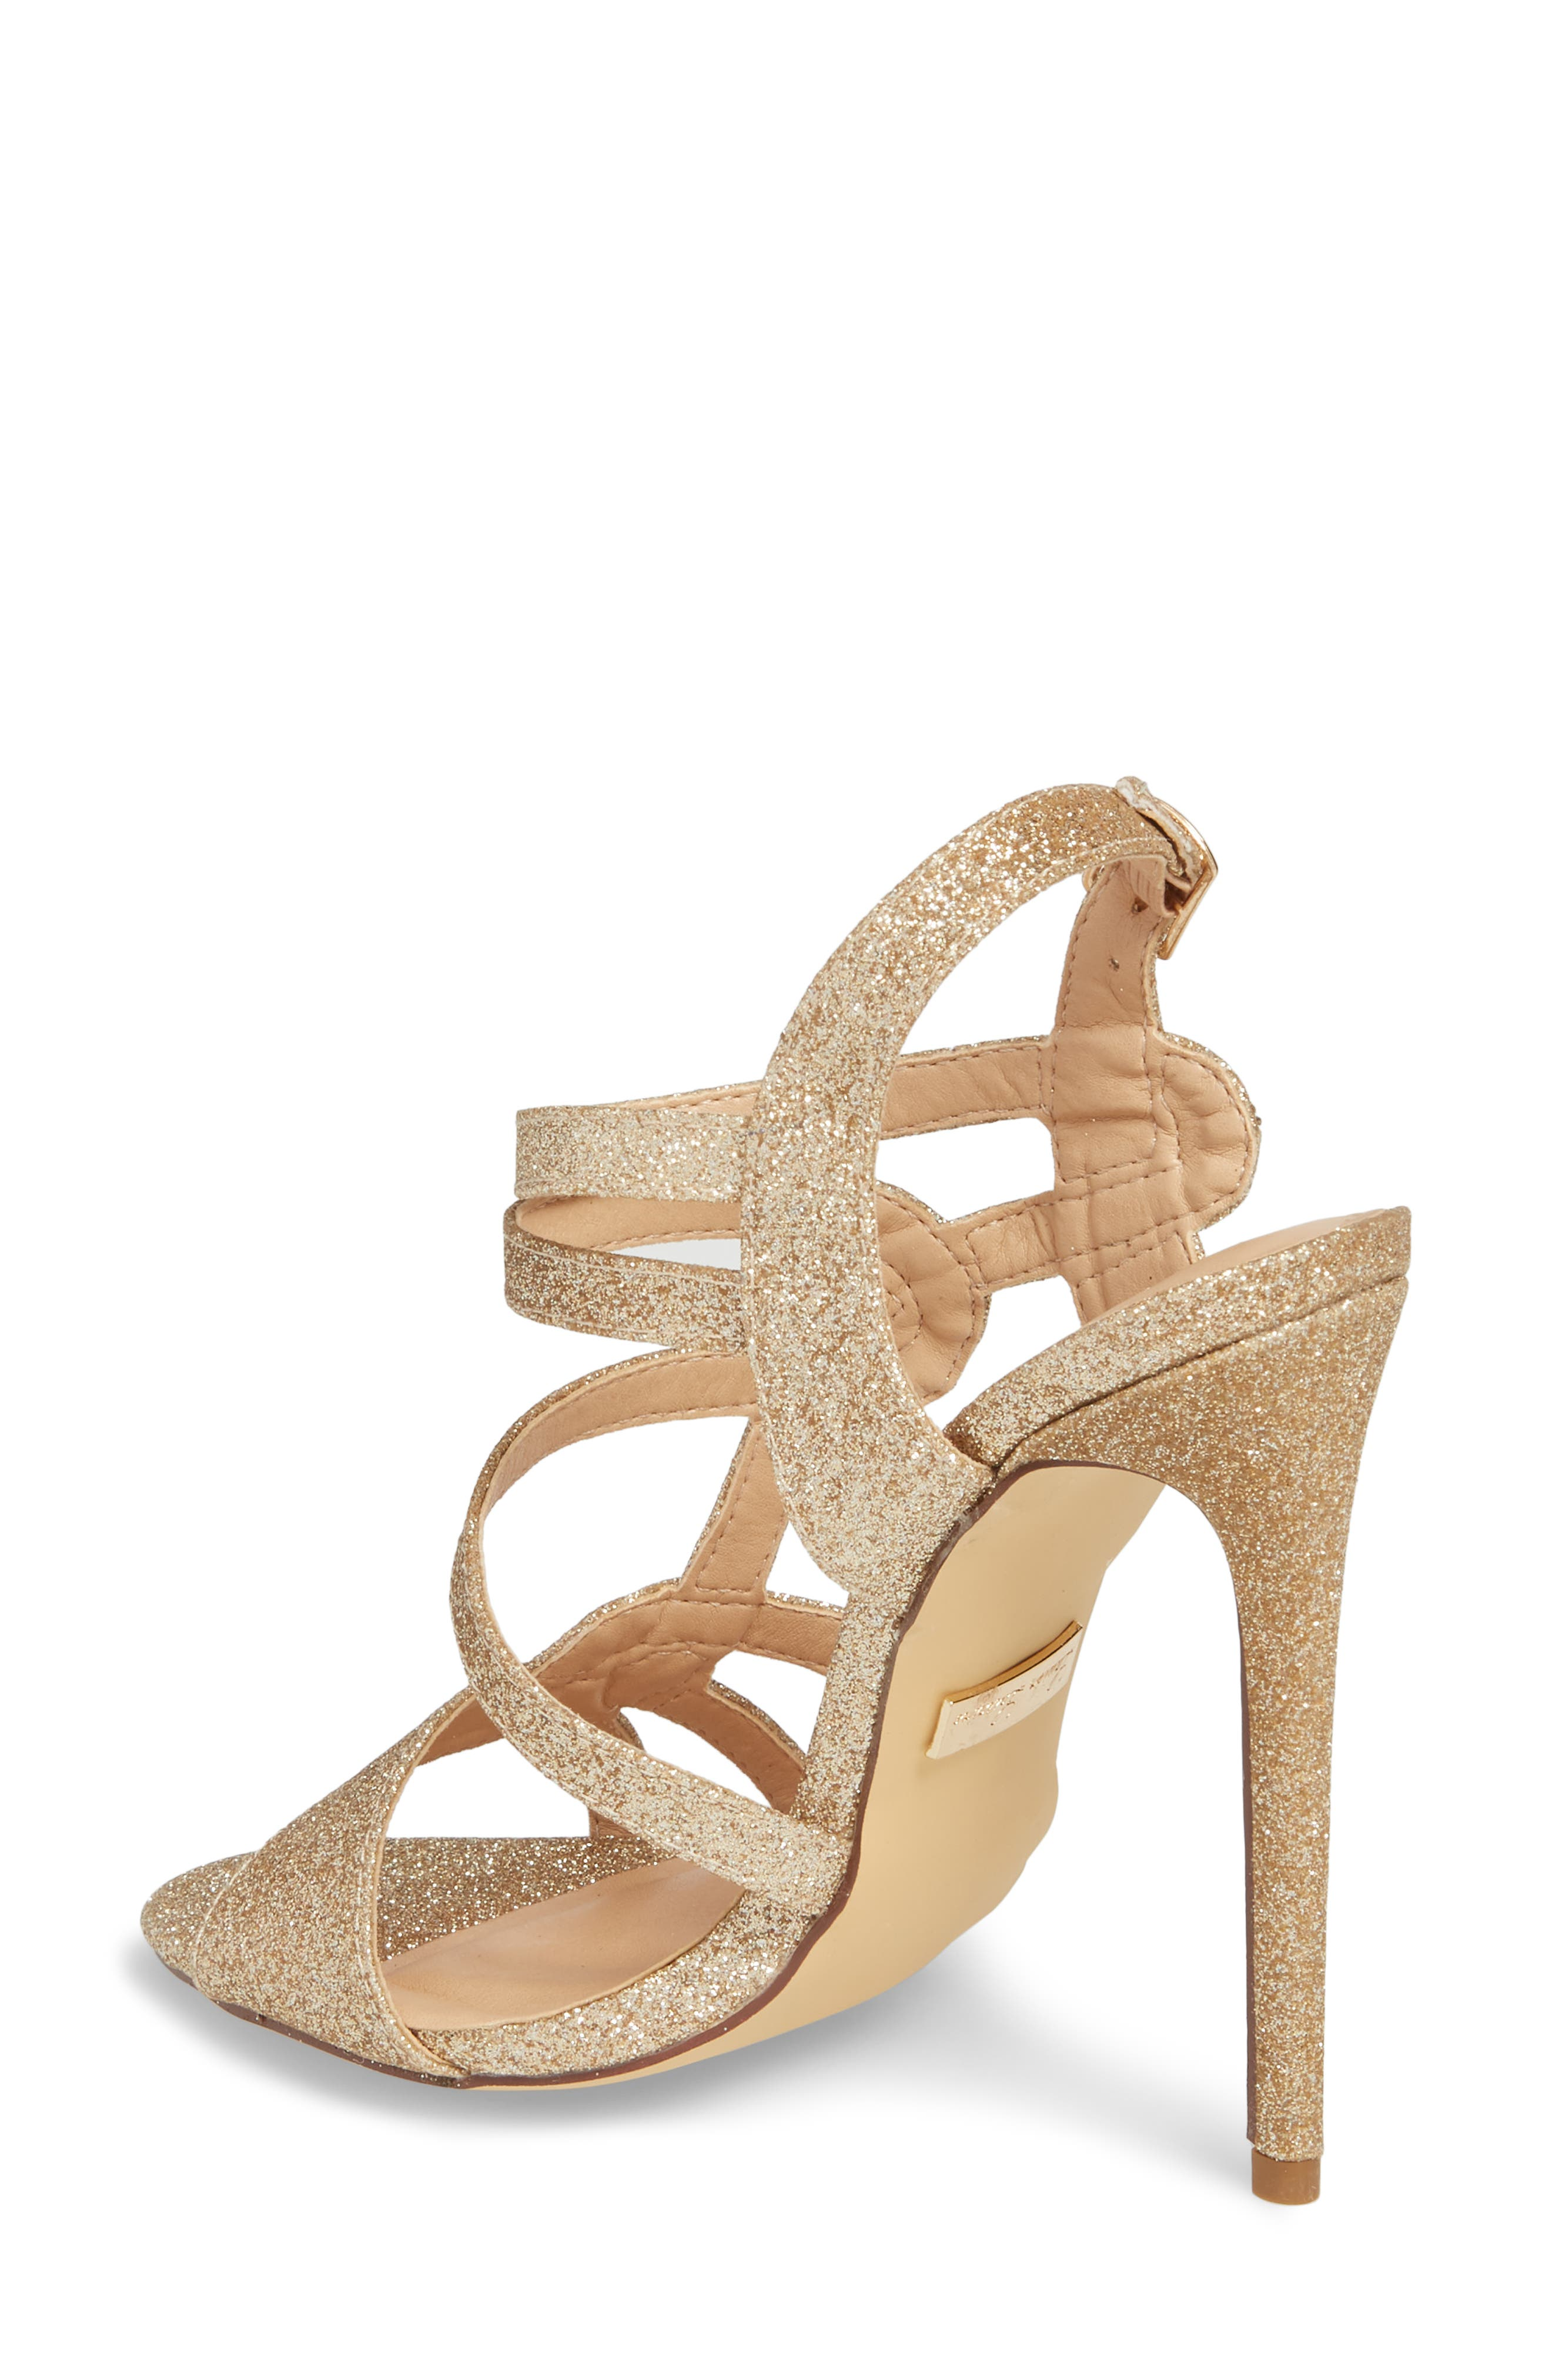 LAUREN LORRAINE, Gidget Sandal, Alternate thumbnail 2, color, NUDE FABRIC